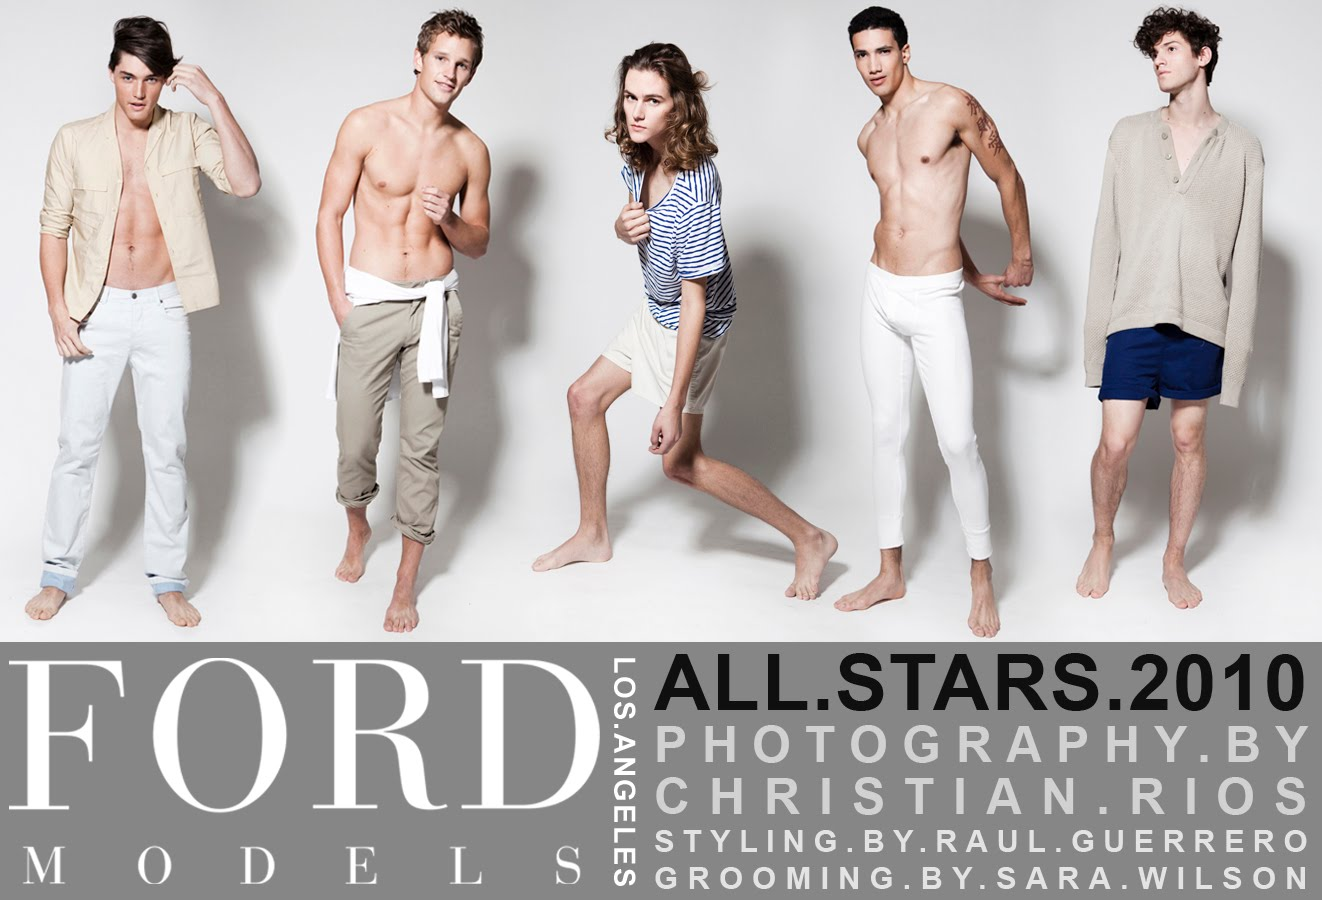 Shoot ford models los angeles all stars 2010 while we are already familiar with work of mr isaac weber and jimmy brighton meet the rest of the all